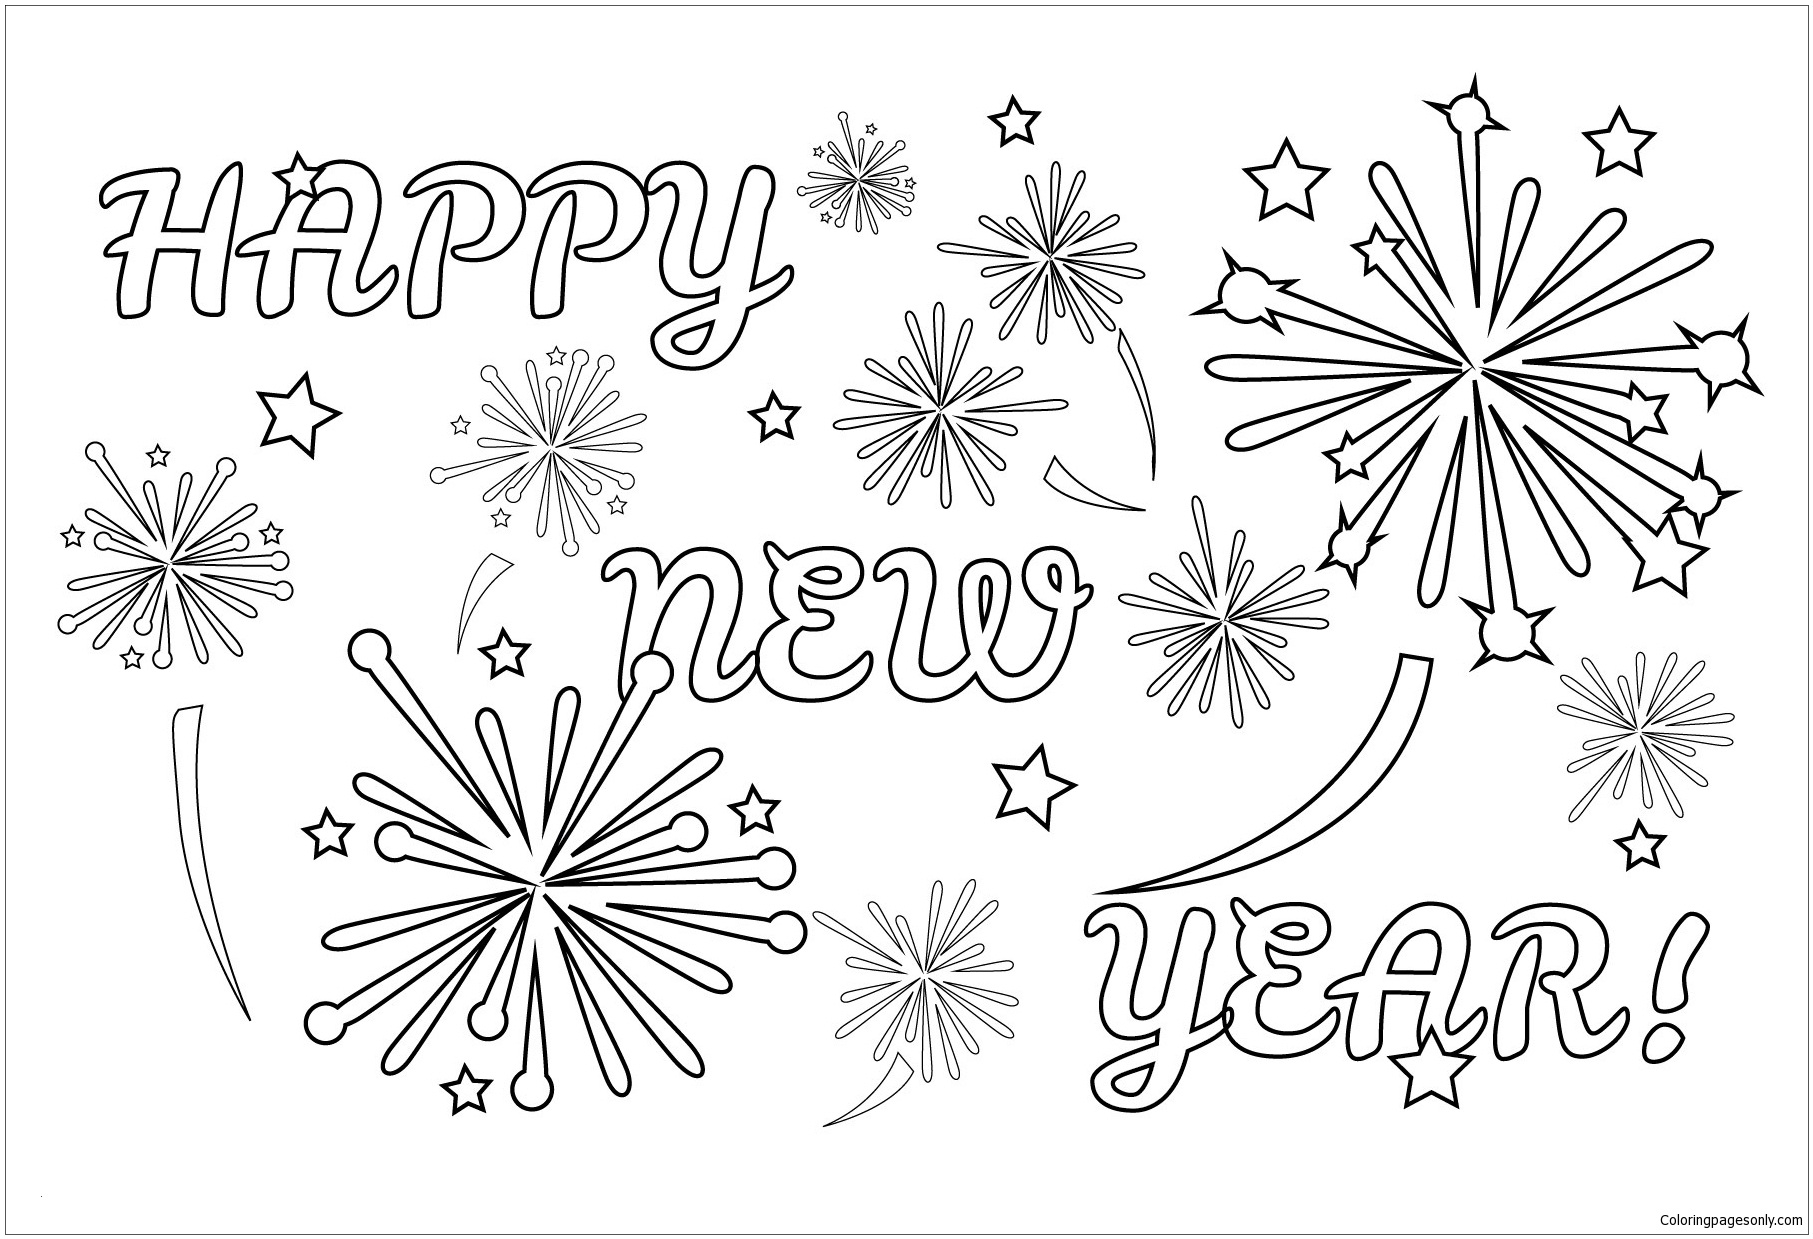 coloring page of fireworks fireworks coloring pages firework colors coloring pages page coloring of fireworks